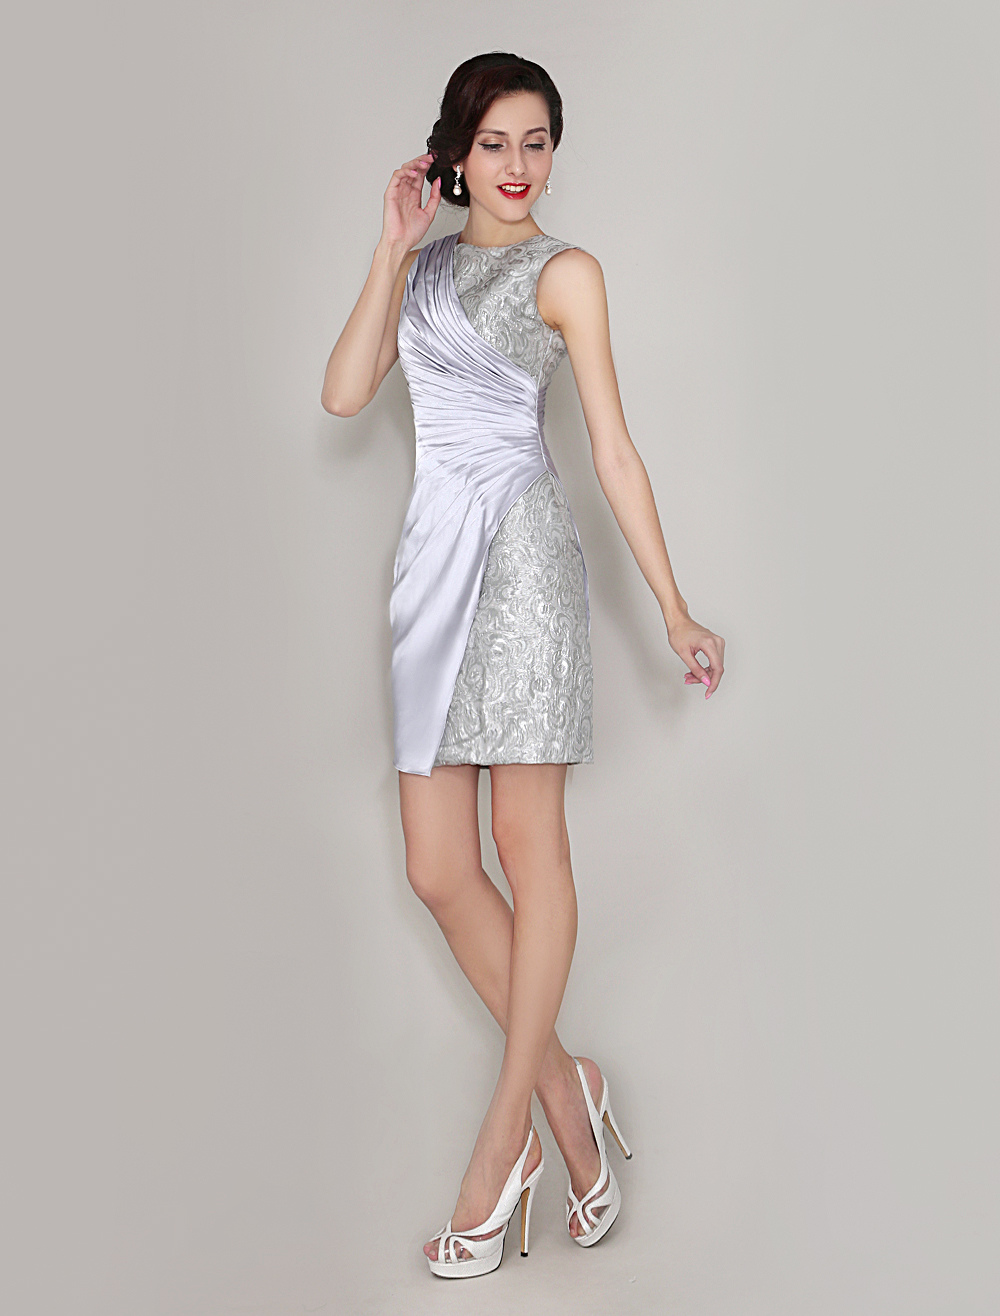 Buy Cocktail Dresses Silver Sheath Wedding Guest Dresses Crewneck Lace Sleeveless Mother Of The Bride Dress Wedding Guest Dress for $119.99 in Milanoo store